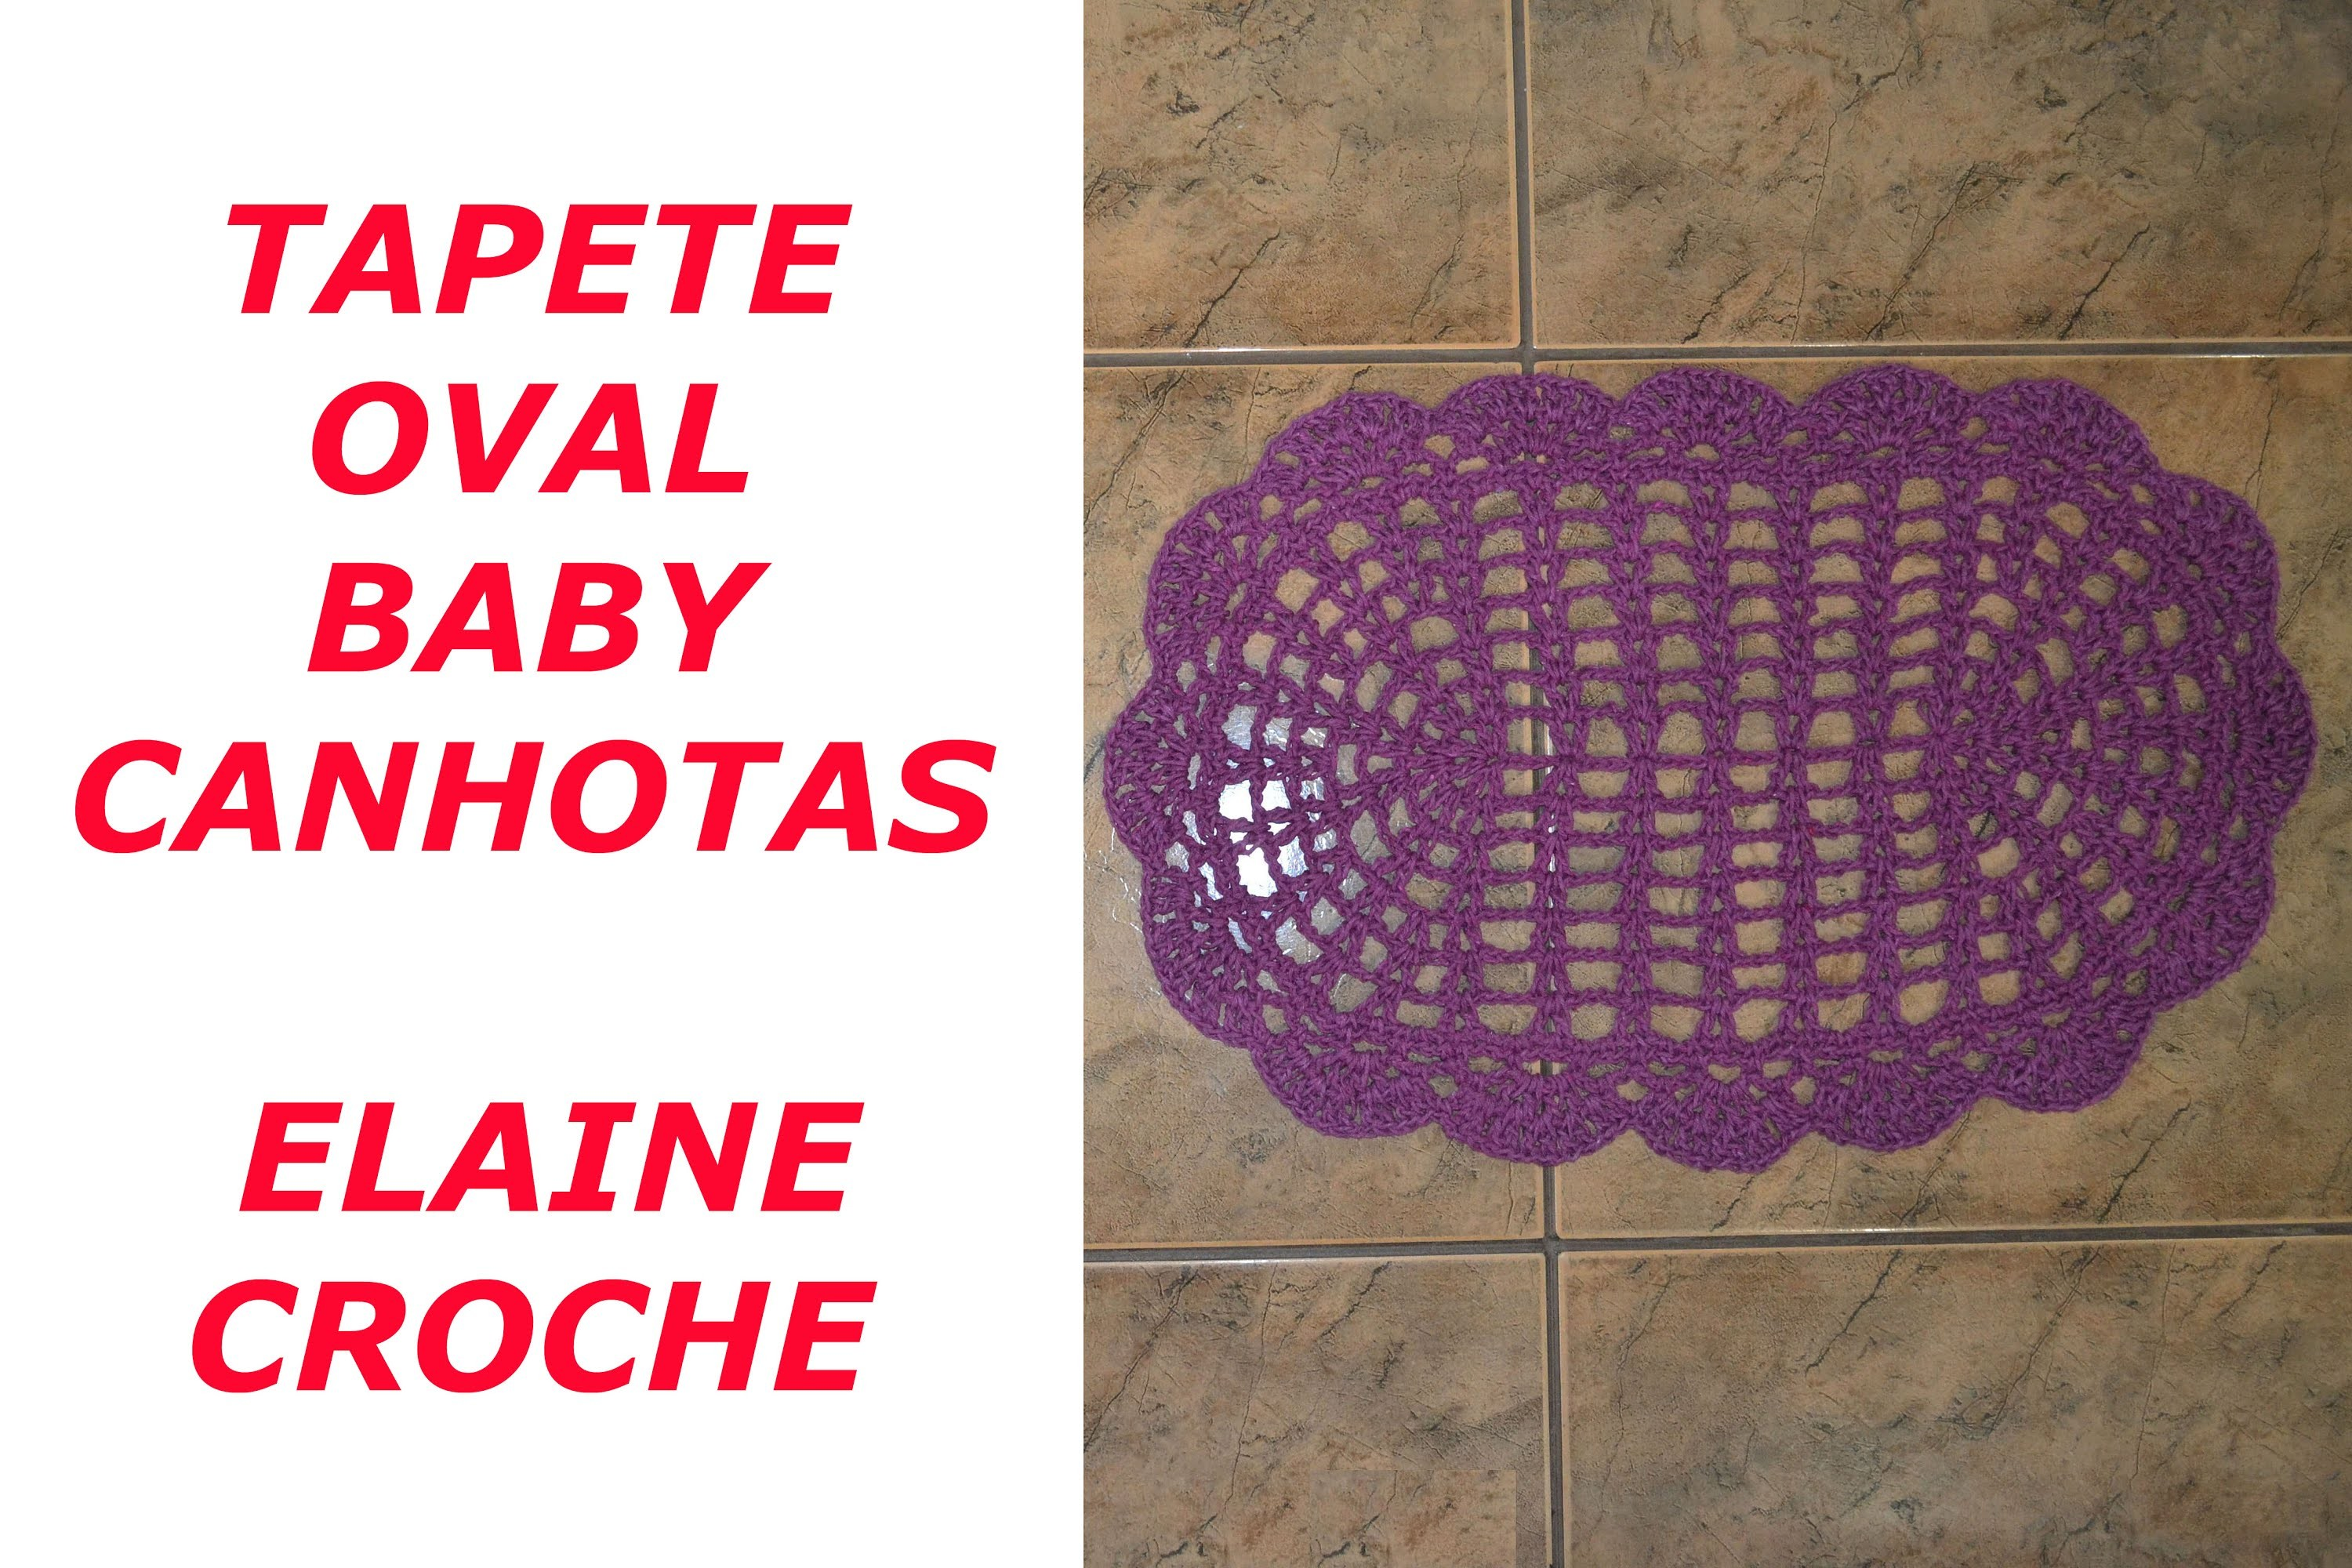 CROCHE PARA CANHOTOS - LEFT HANDED CROCHET - TAPETE OVAL BABY CROCHE CANHOTAS